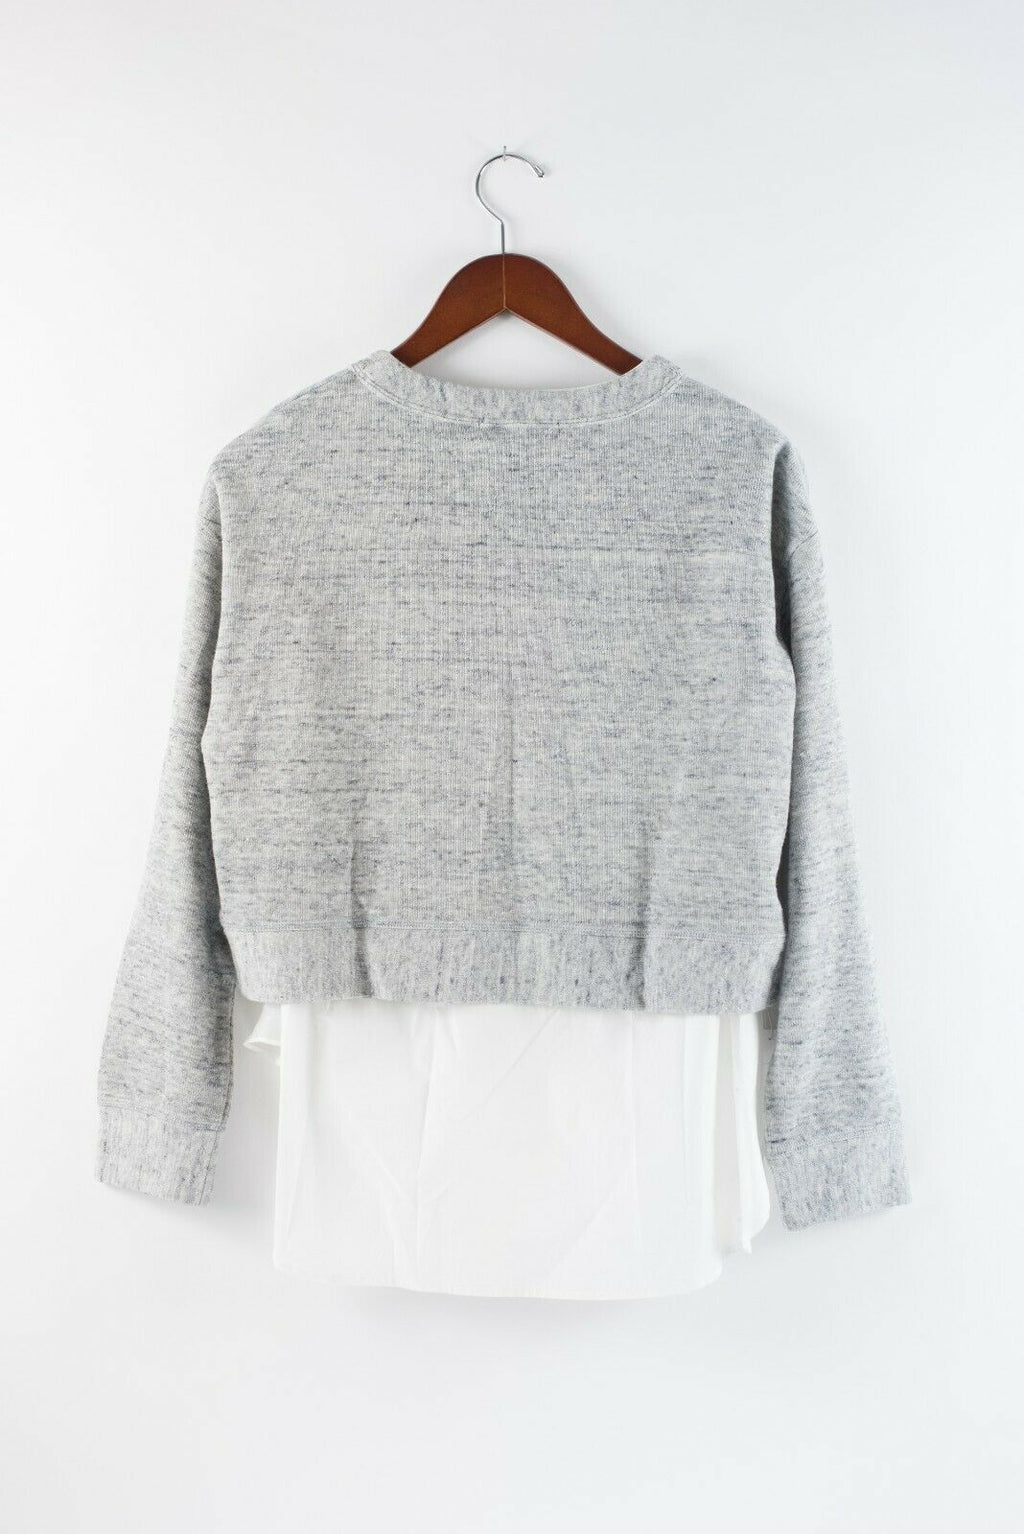 Derek Lam 10 Crosby Womens Size 0 Grey White Sweater Poplin Layered Sweatshirt